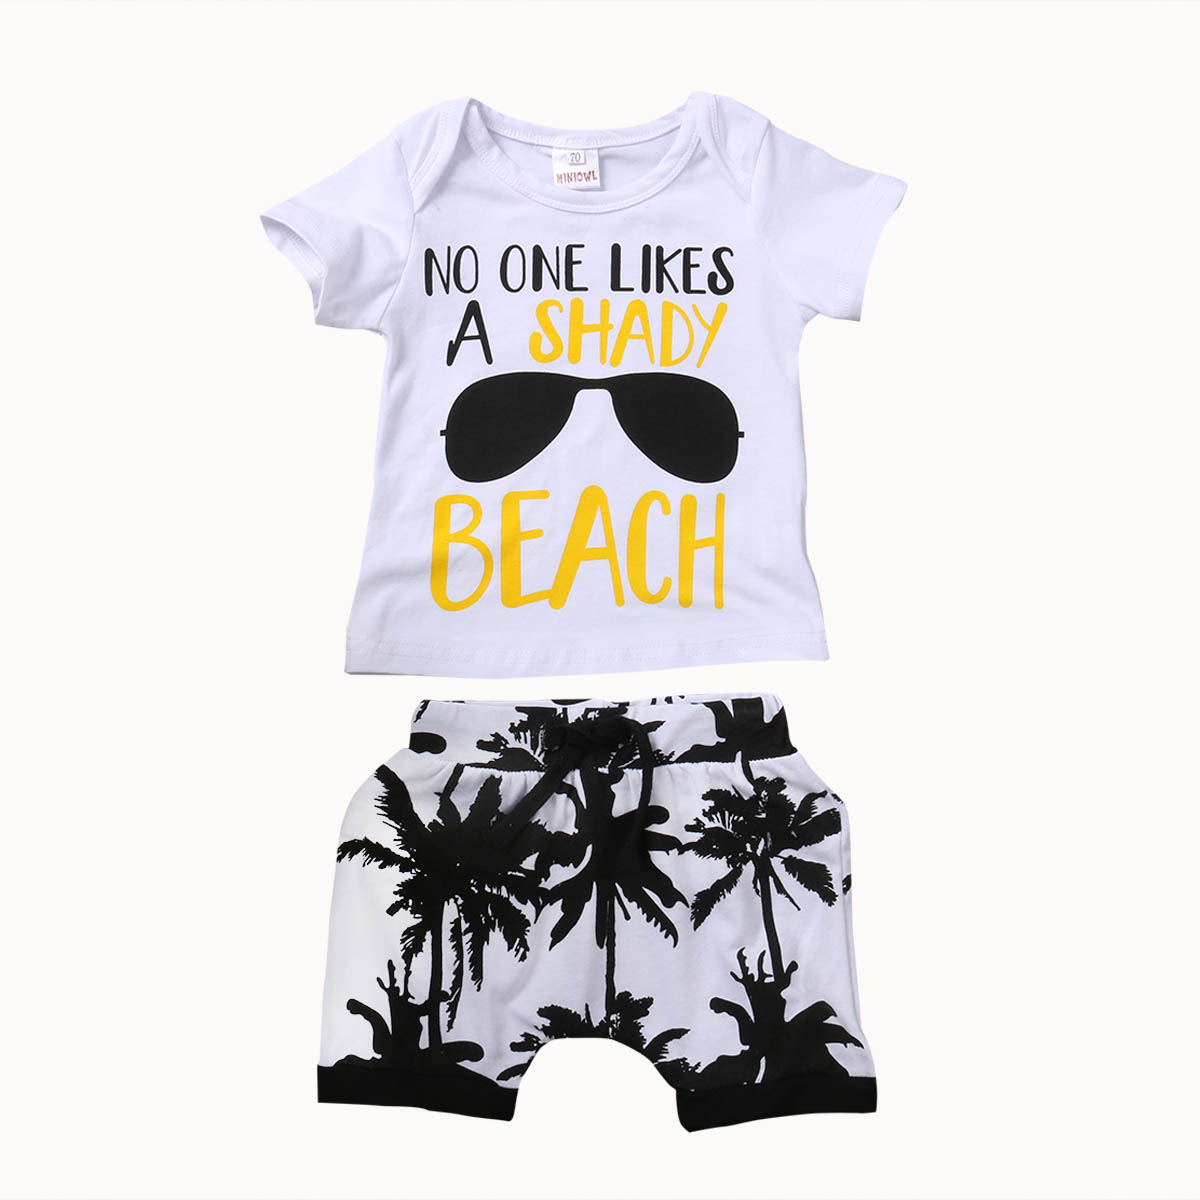 2PCS Toddler Kids Baby Boy Girl Clothes Set 2017 Summer Short Sleeve Cotton T-shirt Top+Shorts Hot Pant Outfit Children Clothing family fashion summer tops 2015 clothers short sleeve t shirt stripe navy style shirt clothes for mother dad and children